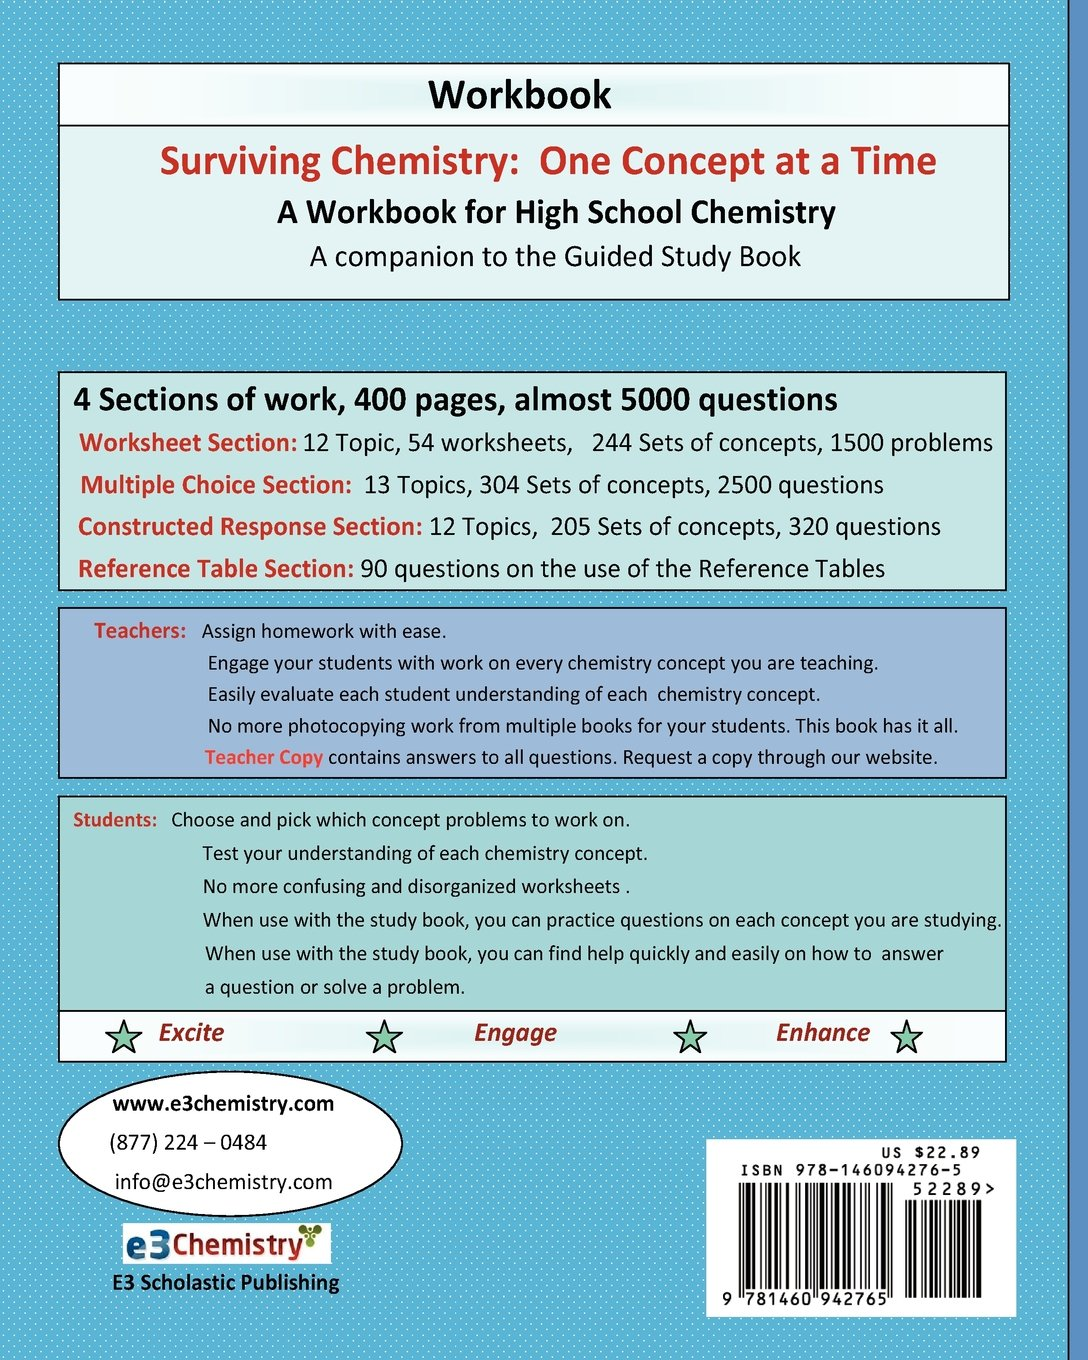 Amazon.com: Surviving Chemistry One Concept at a Time: Workbook: A ...